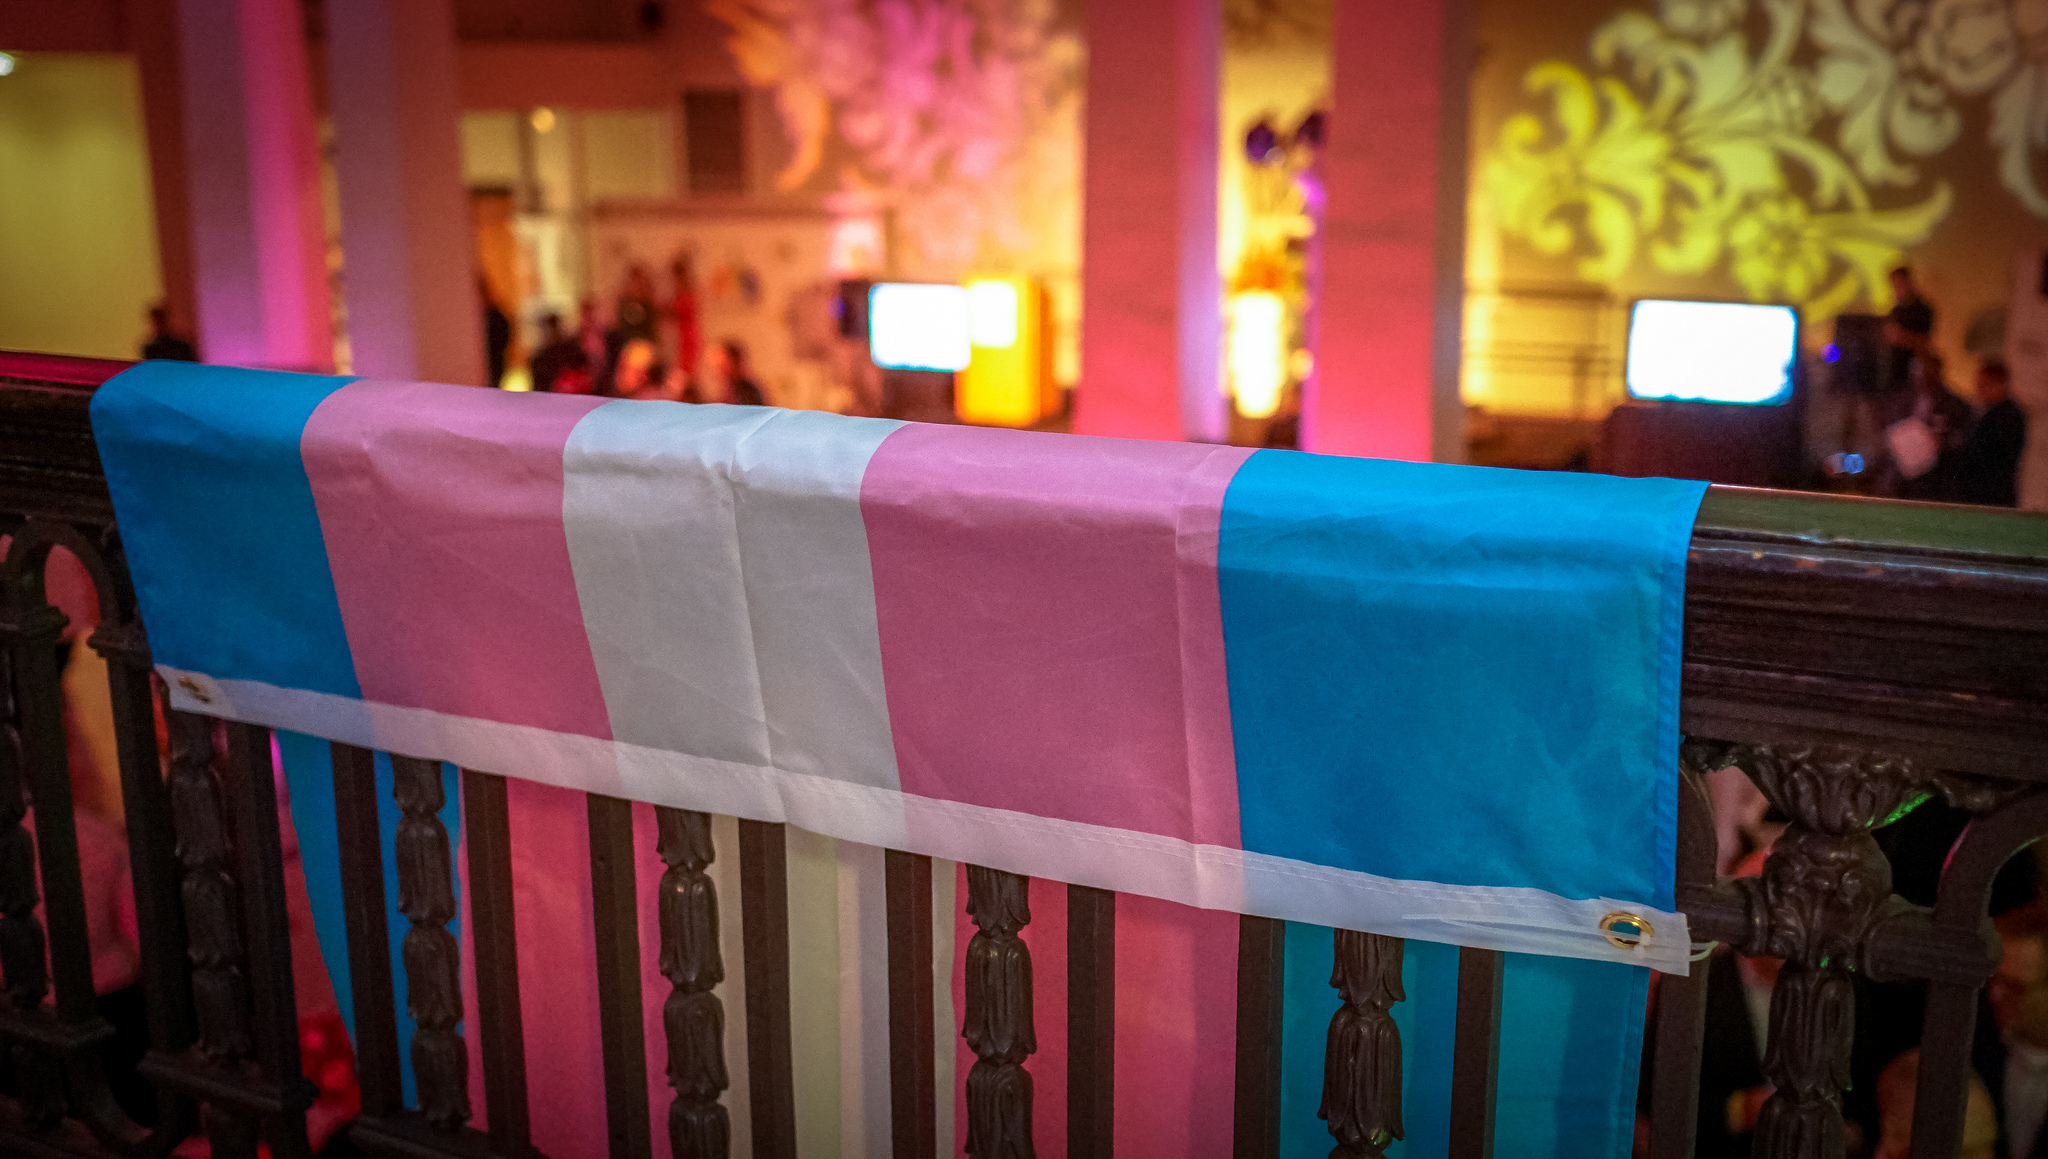 History of the GENDER IDENTITY LAW in Chile